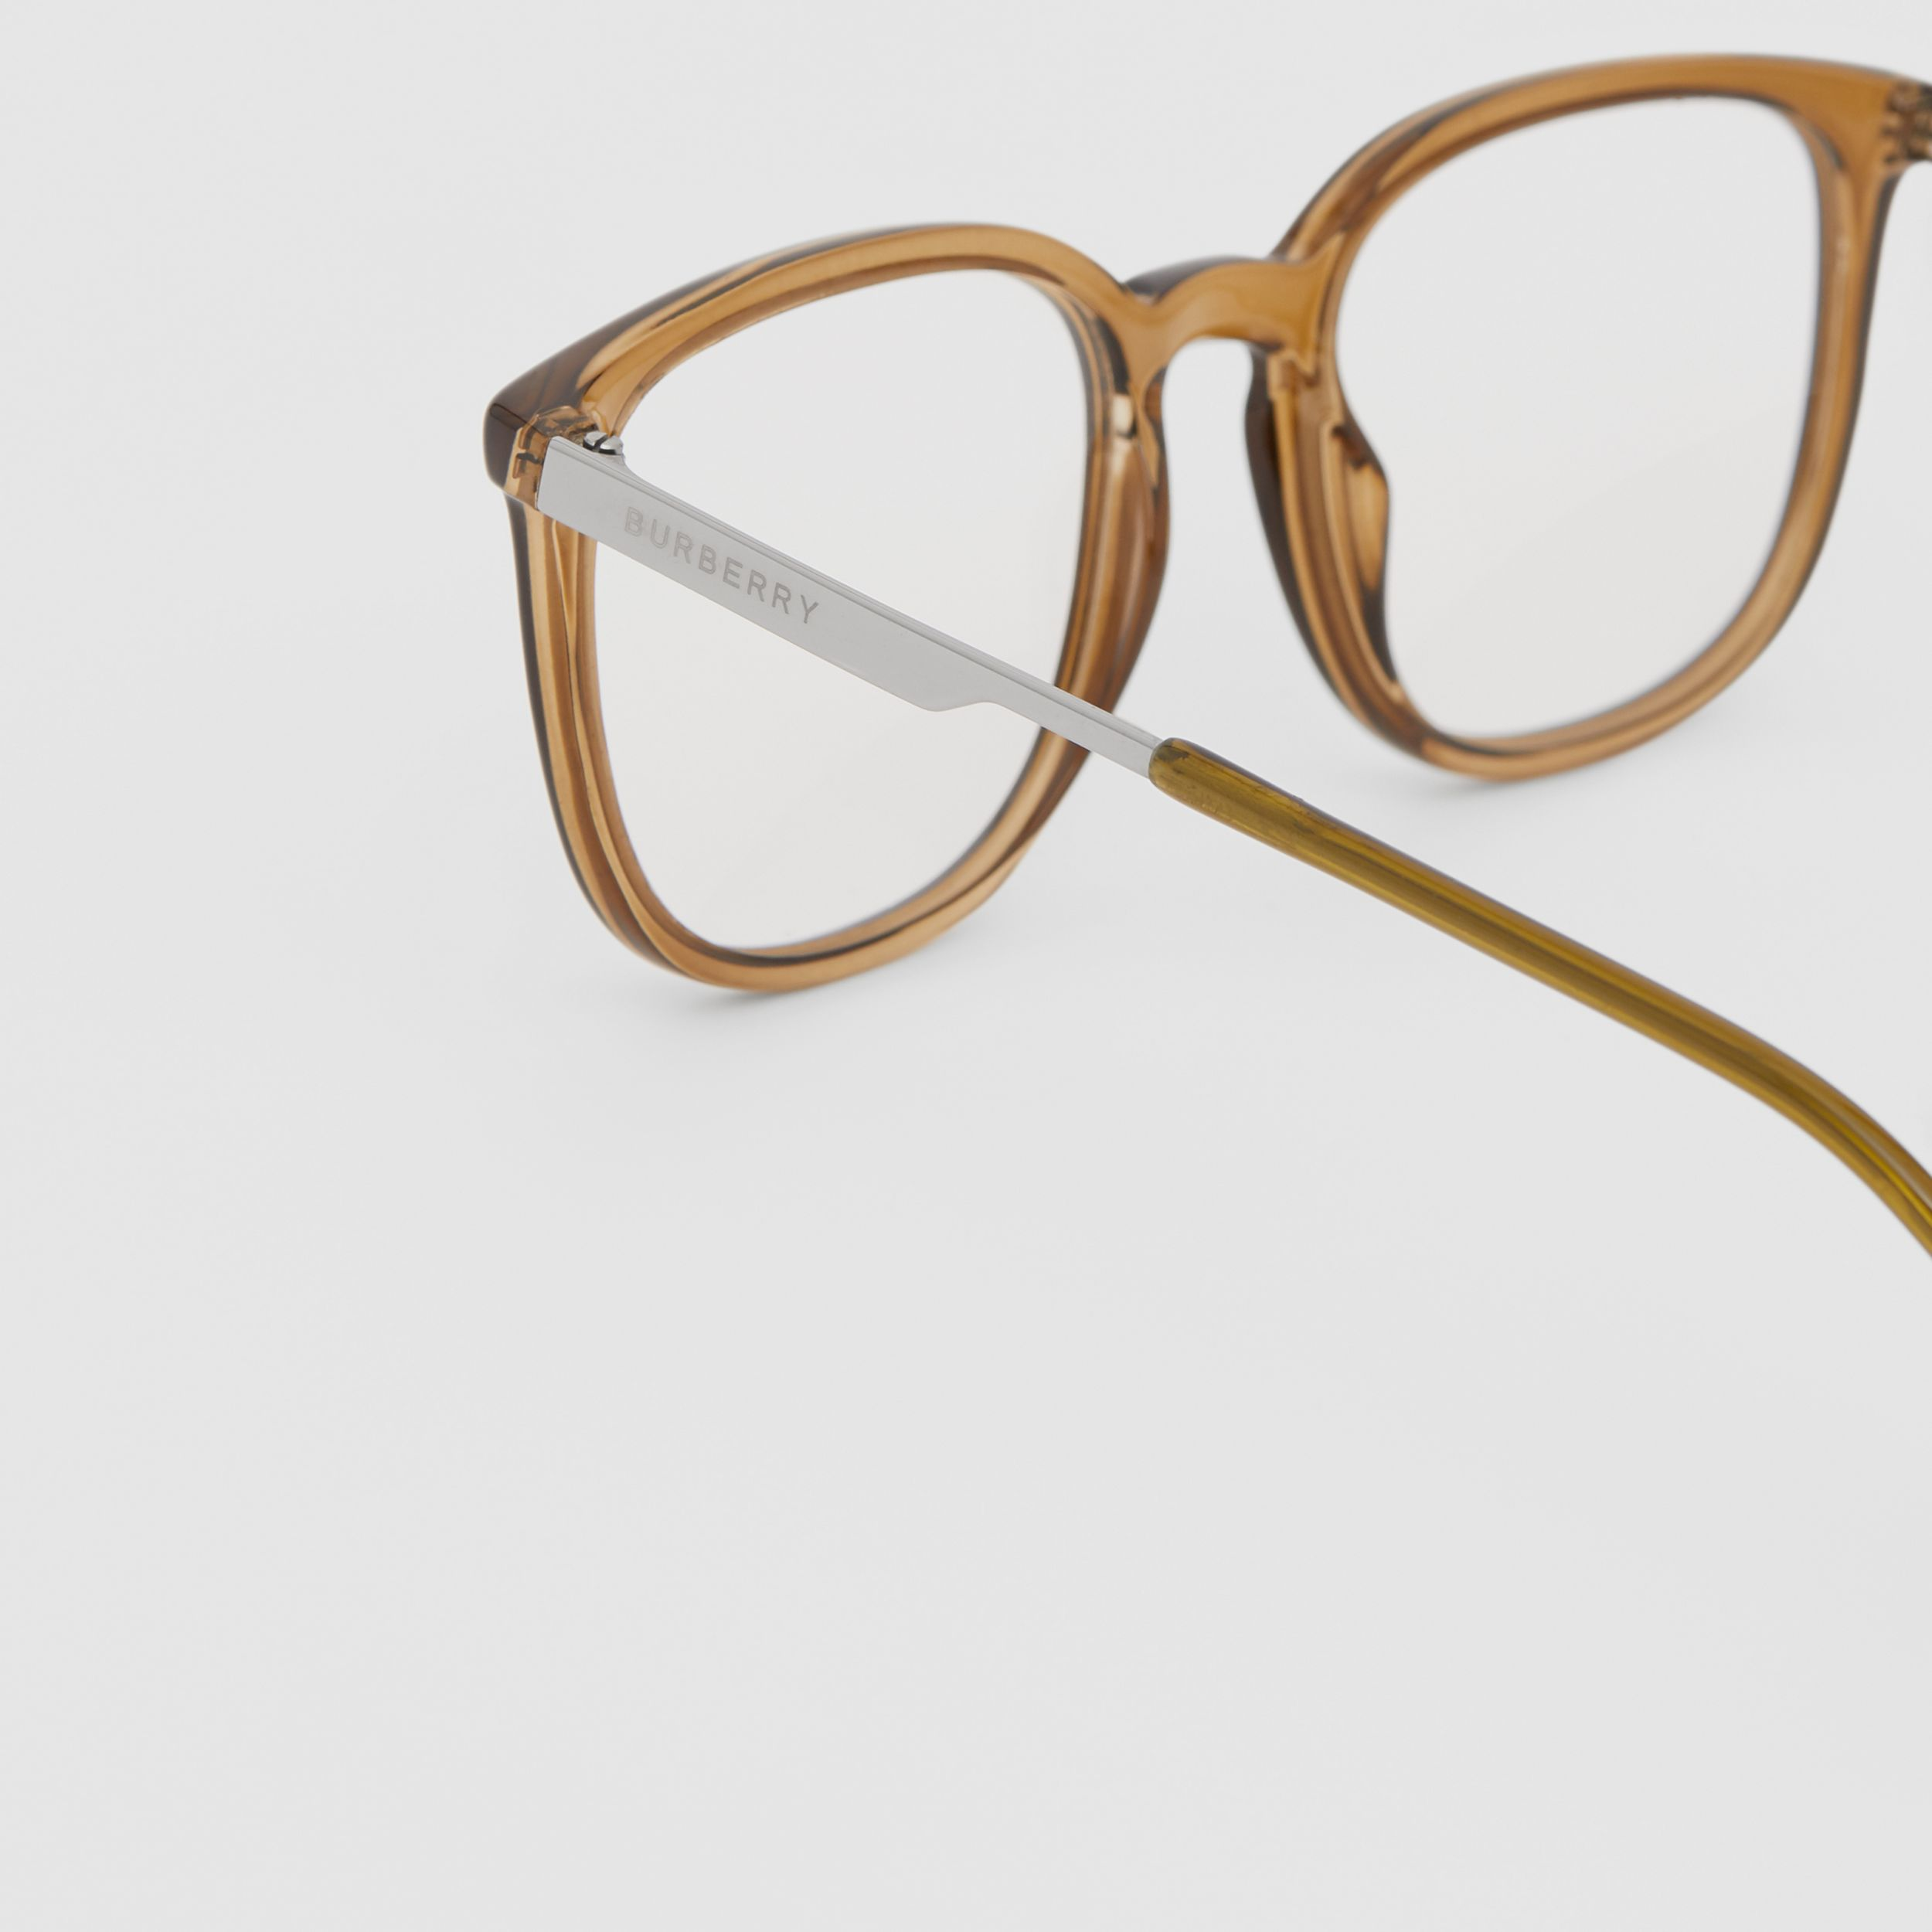 Square Optical Frames in Olive Green | Burberry - 2